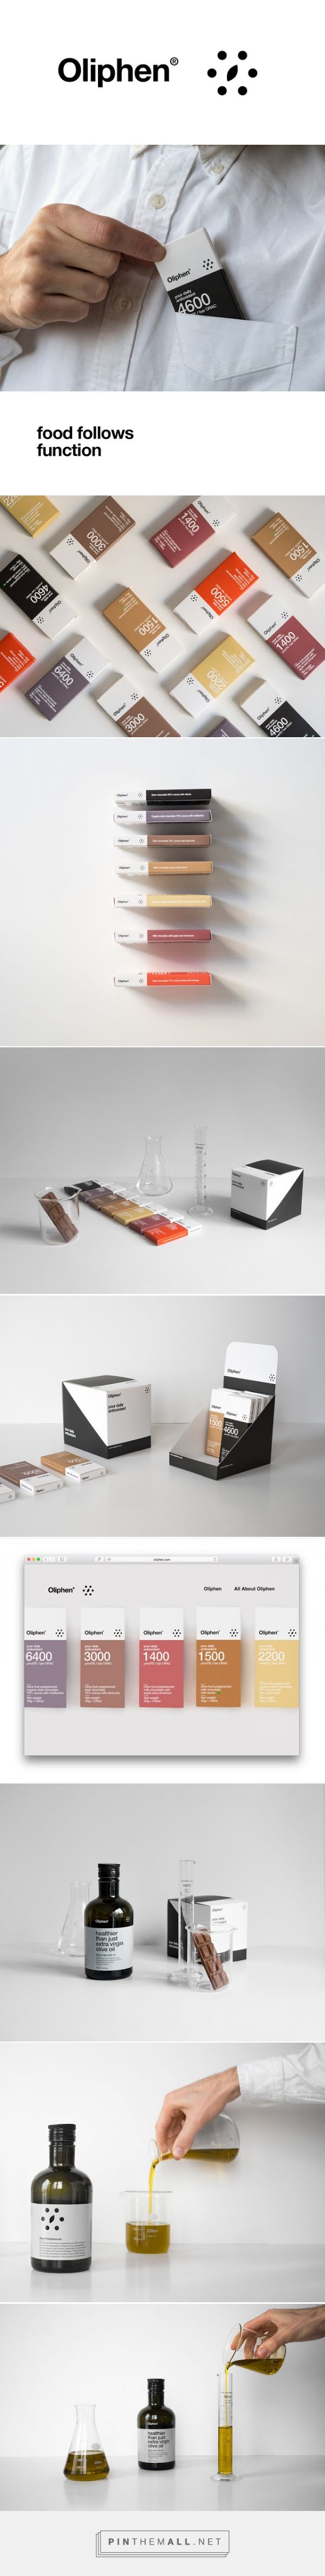 Oliphen - Food Follows Function packaging designed by Typical. - http://www.packagingoftheworld.com/2015/12/oliphen-food-follows-function.html